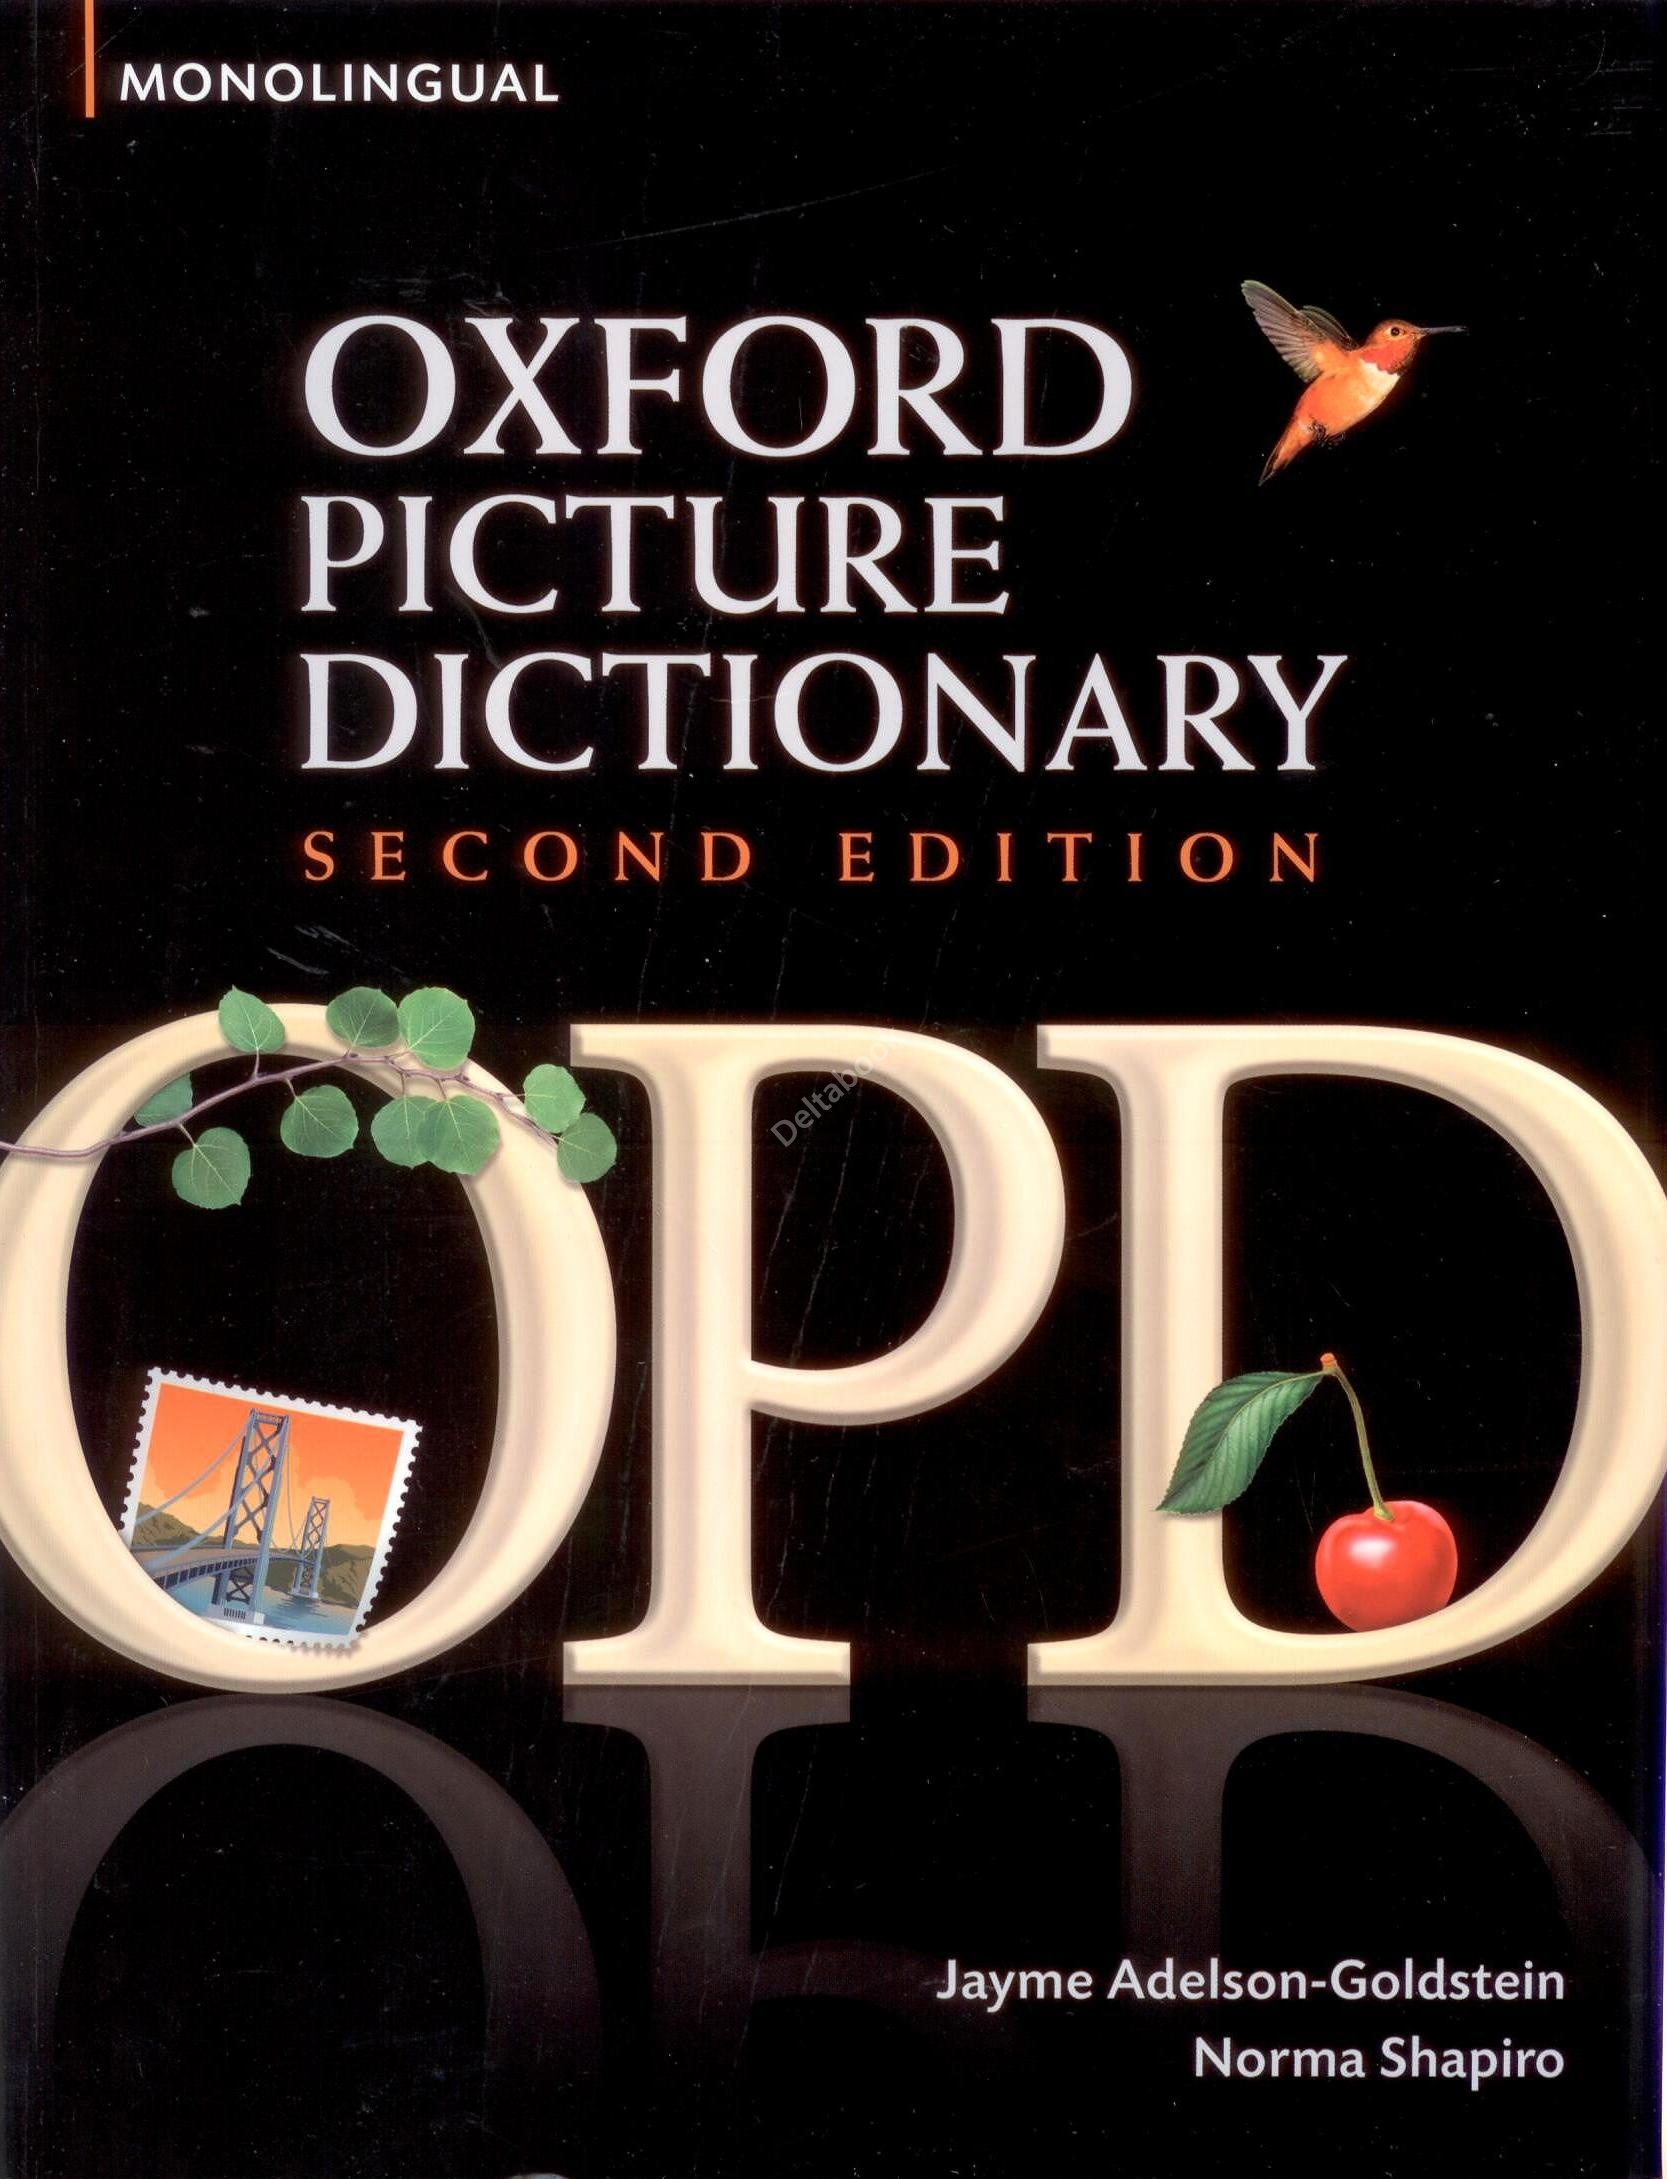 Oxford Picture Dictionary (Second Edition) Monolingual